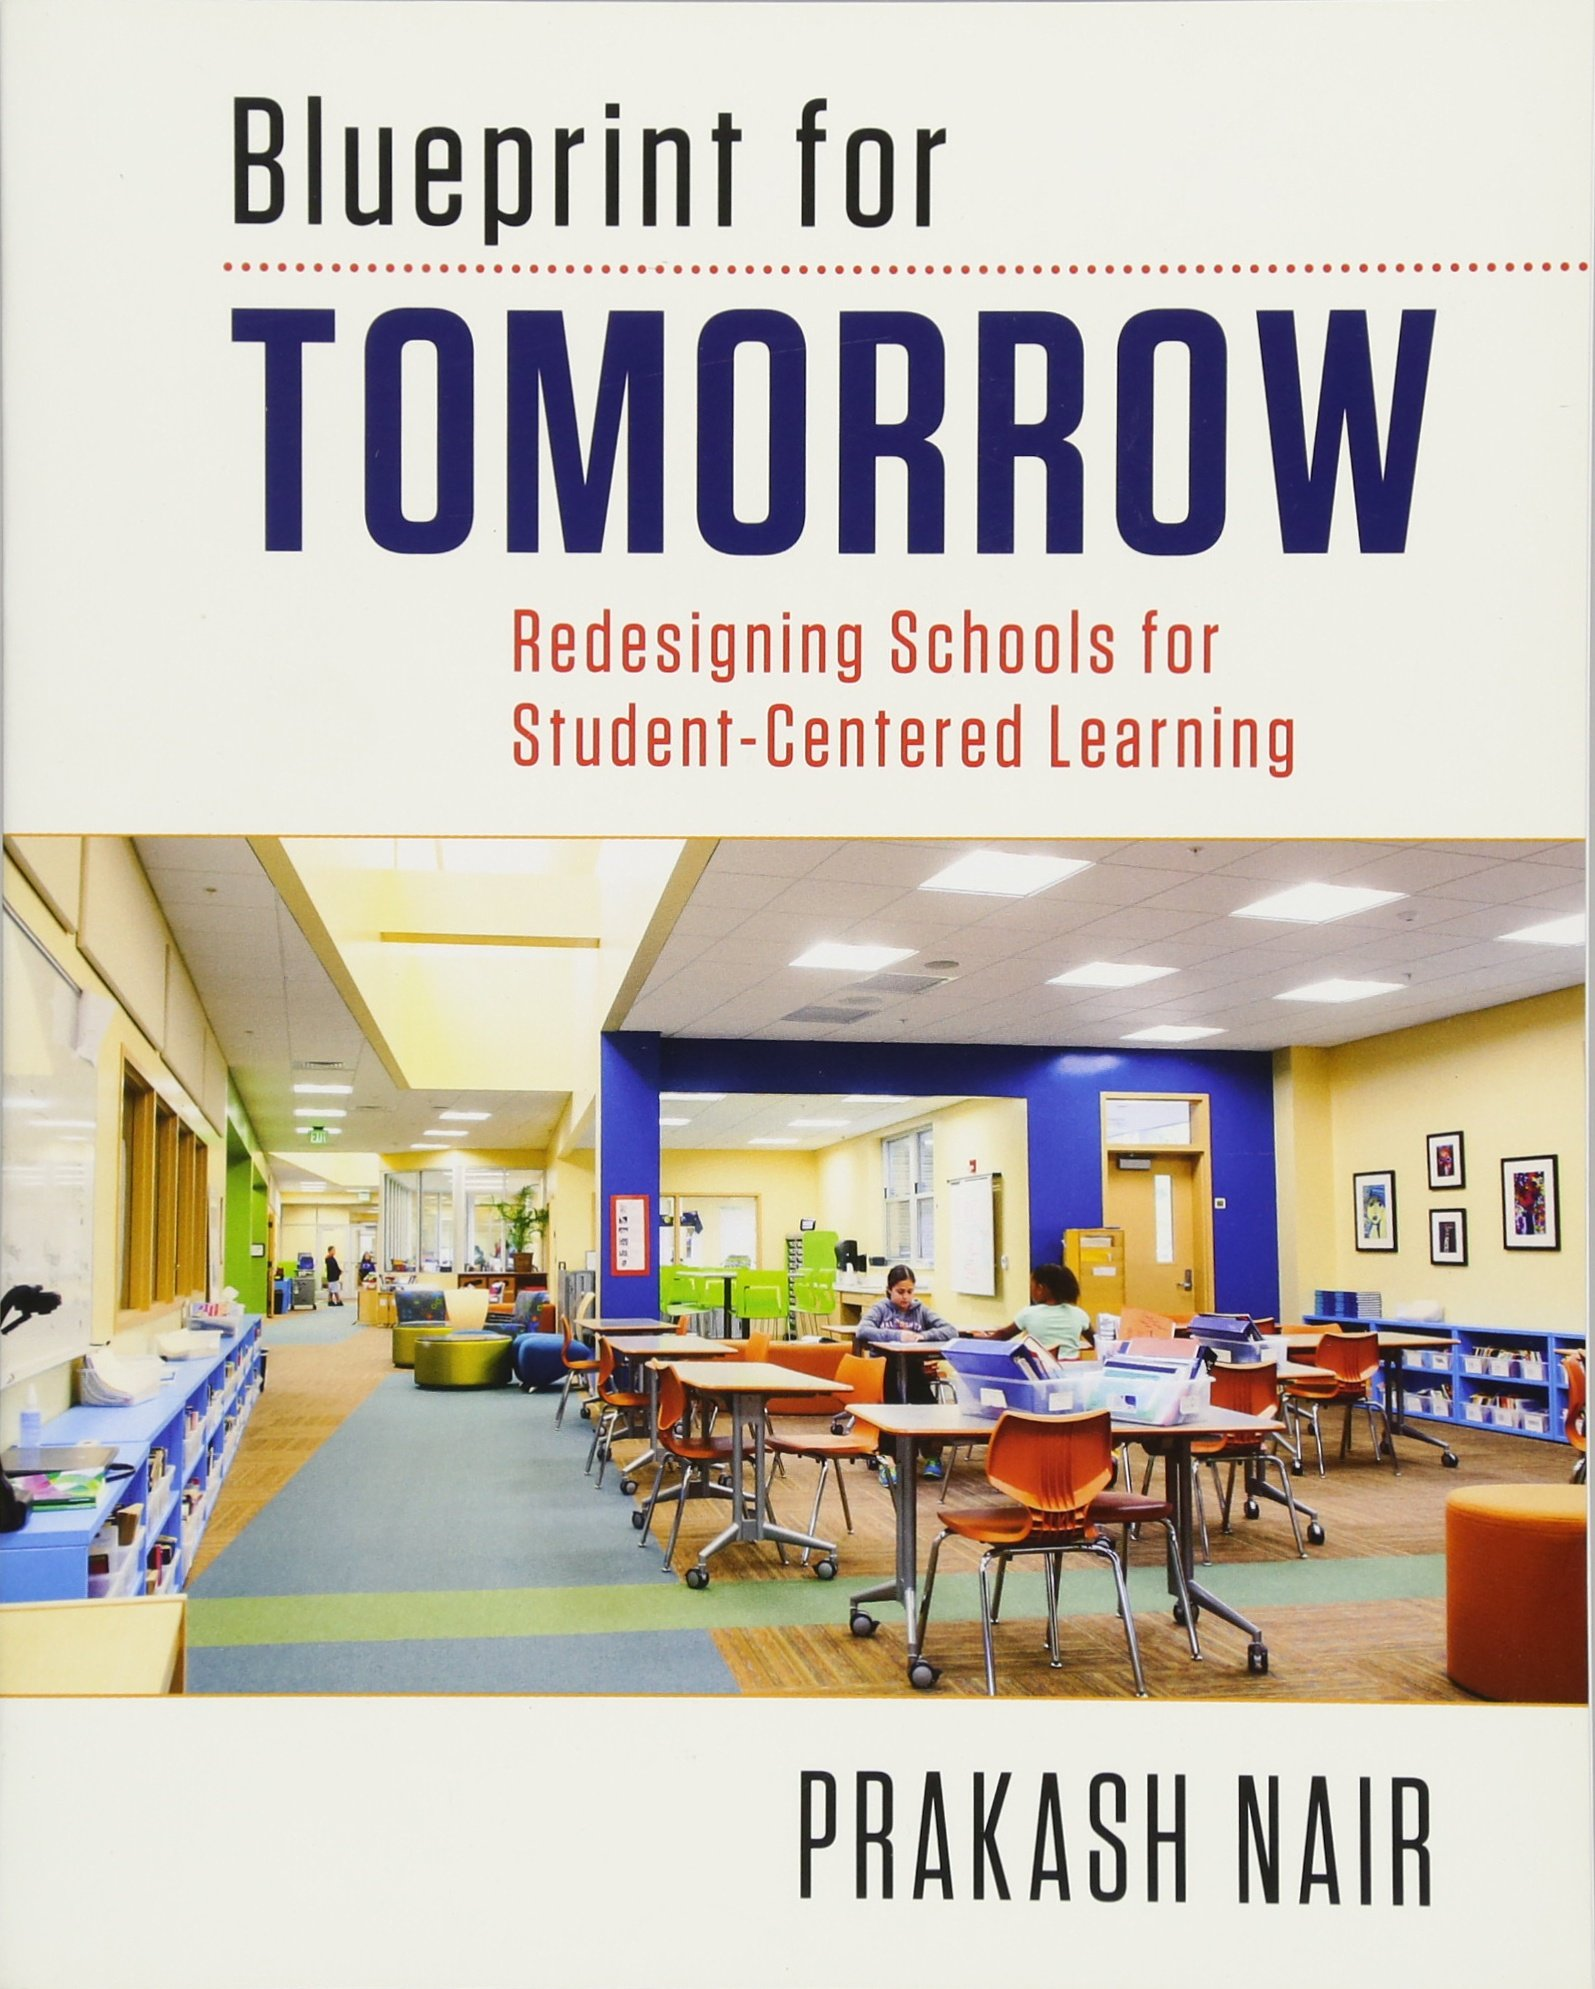 Buy blueprint for tomorrow redesigning schools for student centered buy blueprint for tomorrow redesigning schools for student centered learning book online at low prices in india blueprint for tomorrow redesigning malvernweather Image collections